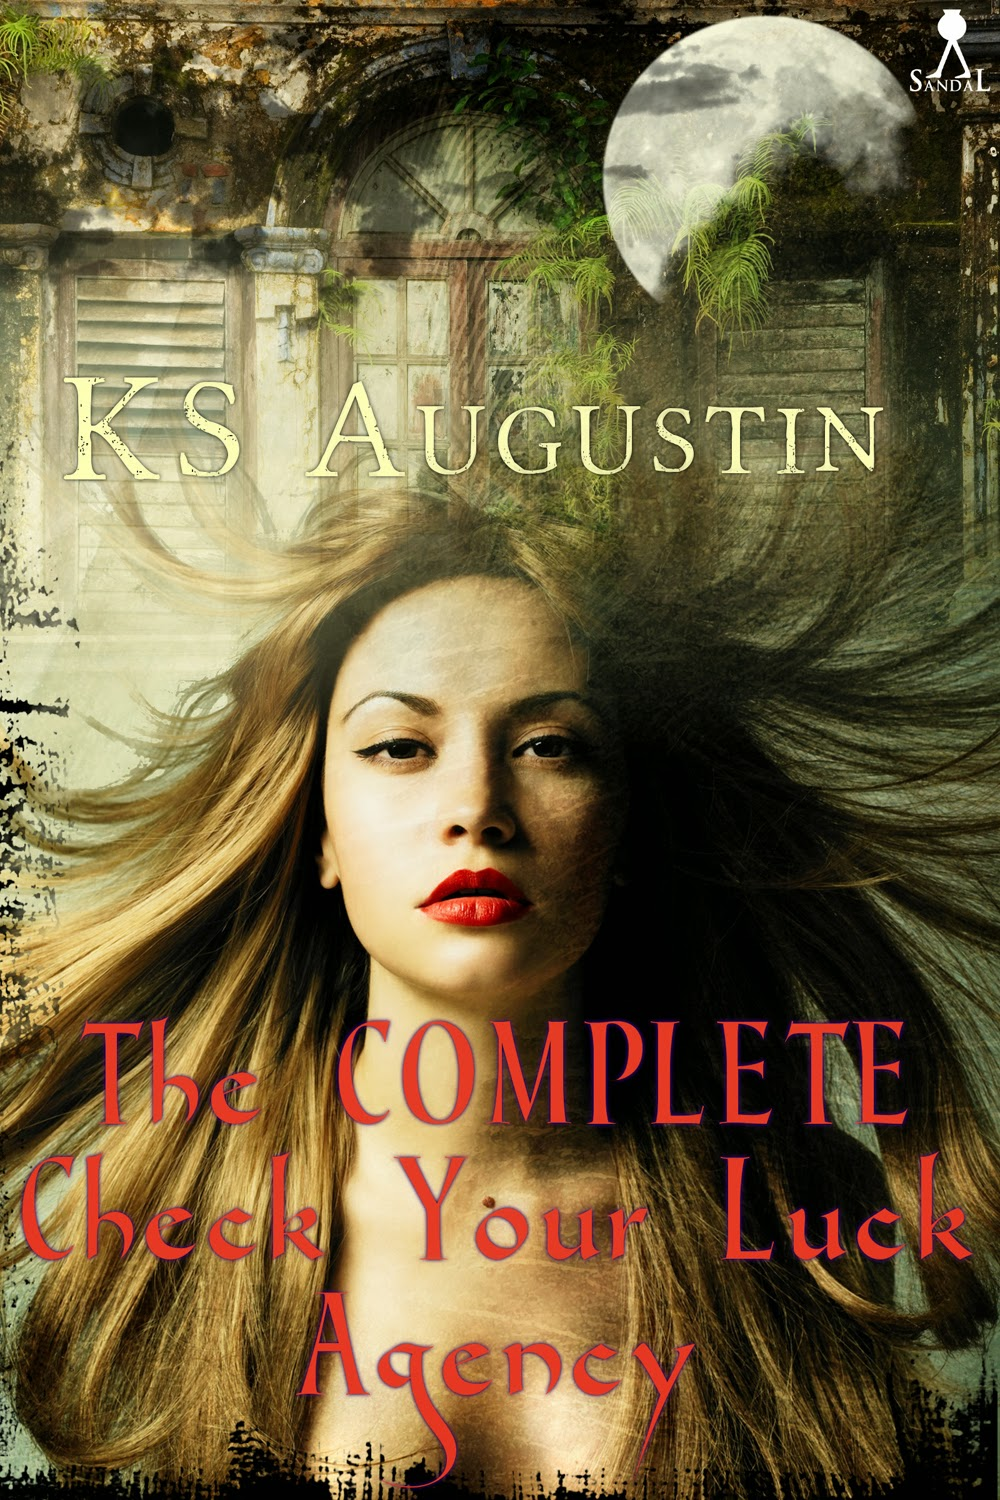 Interview with urban fantasy author K.S. Augustin